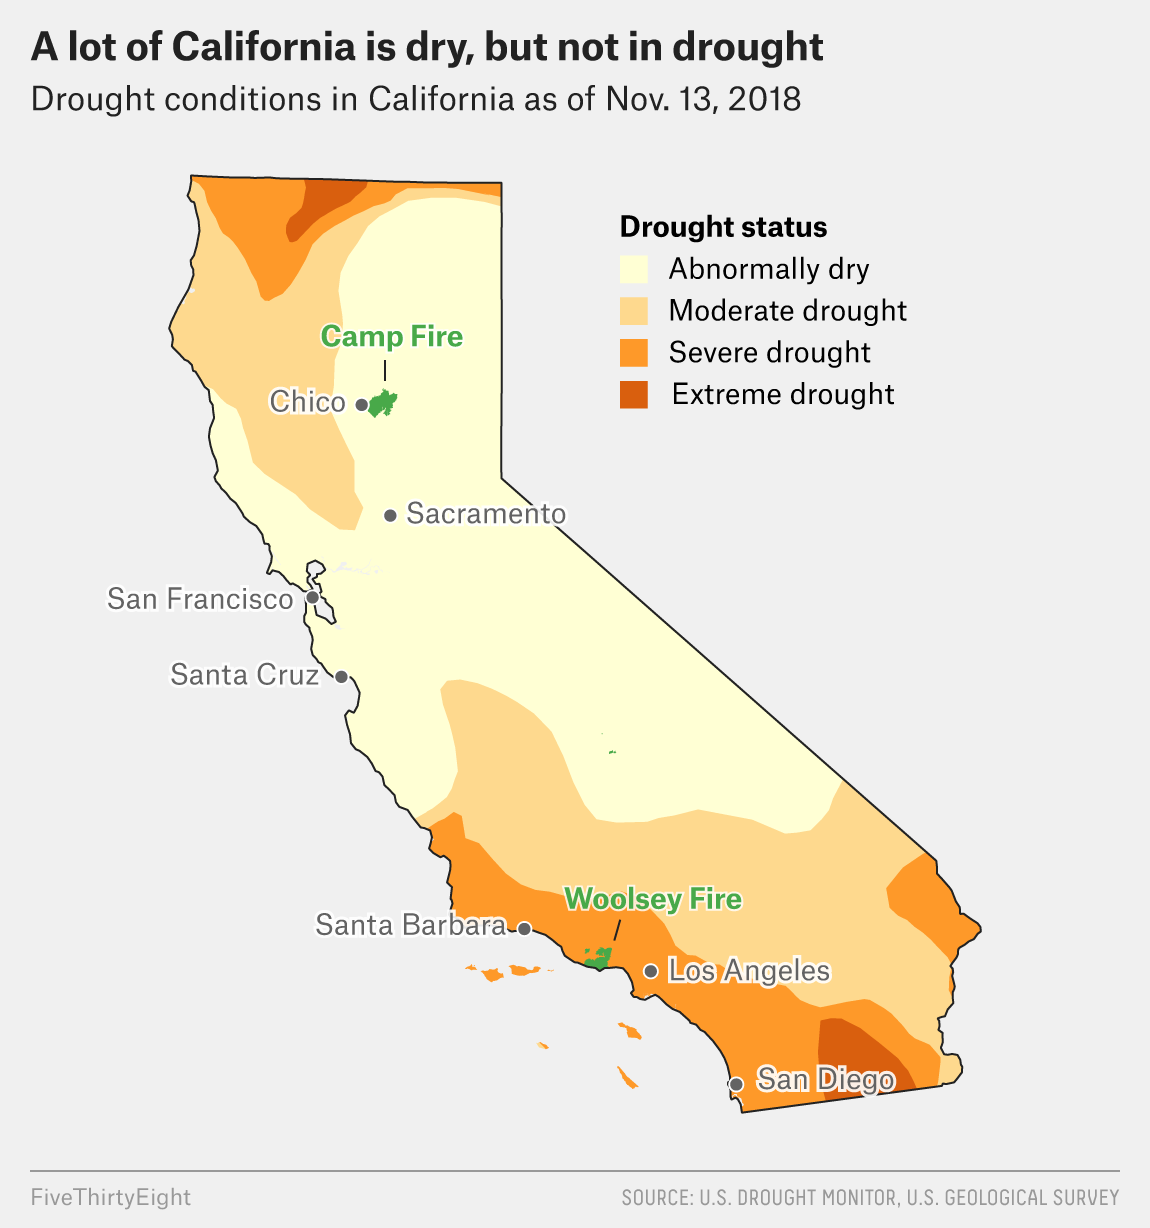 Northern California Fire Map 2018.Camp Fire California Map Map Shows Risk Of Debris Flows In Camp